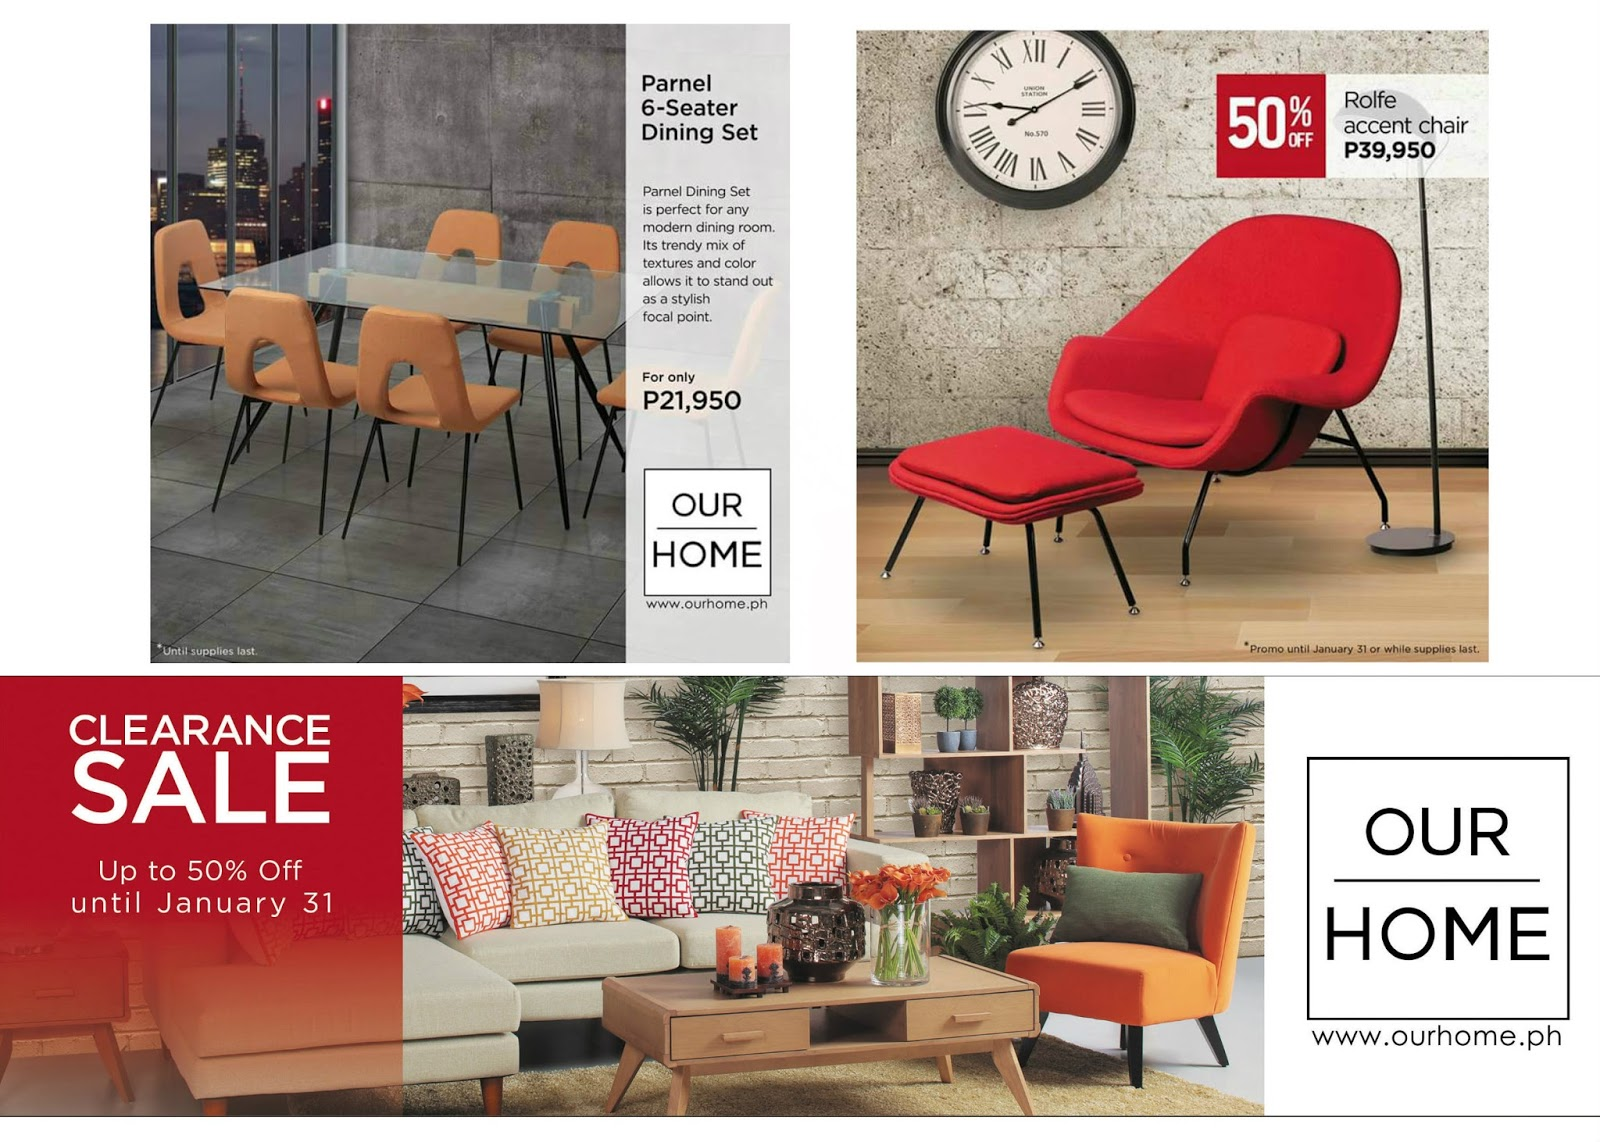 Our Home Clearance Sale At Sm City Marilao The Products Blog